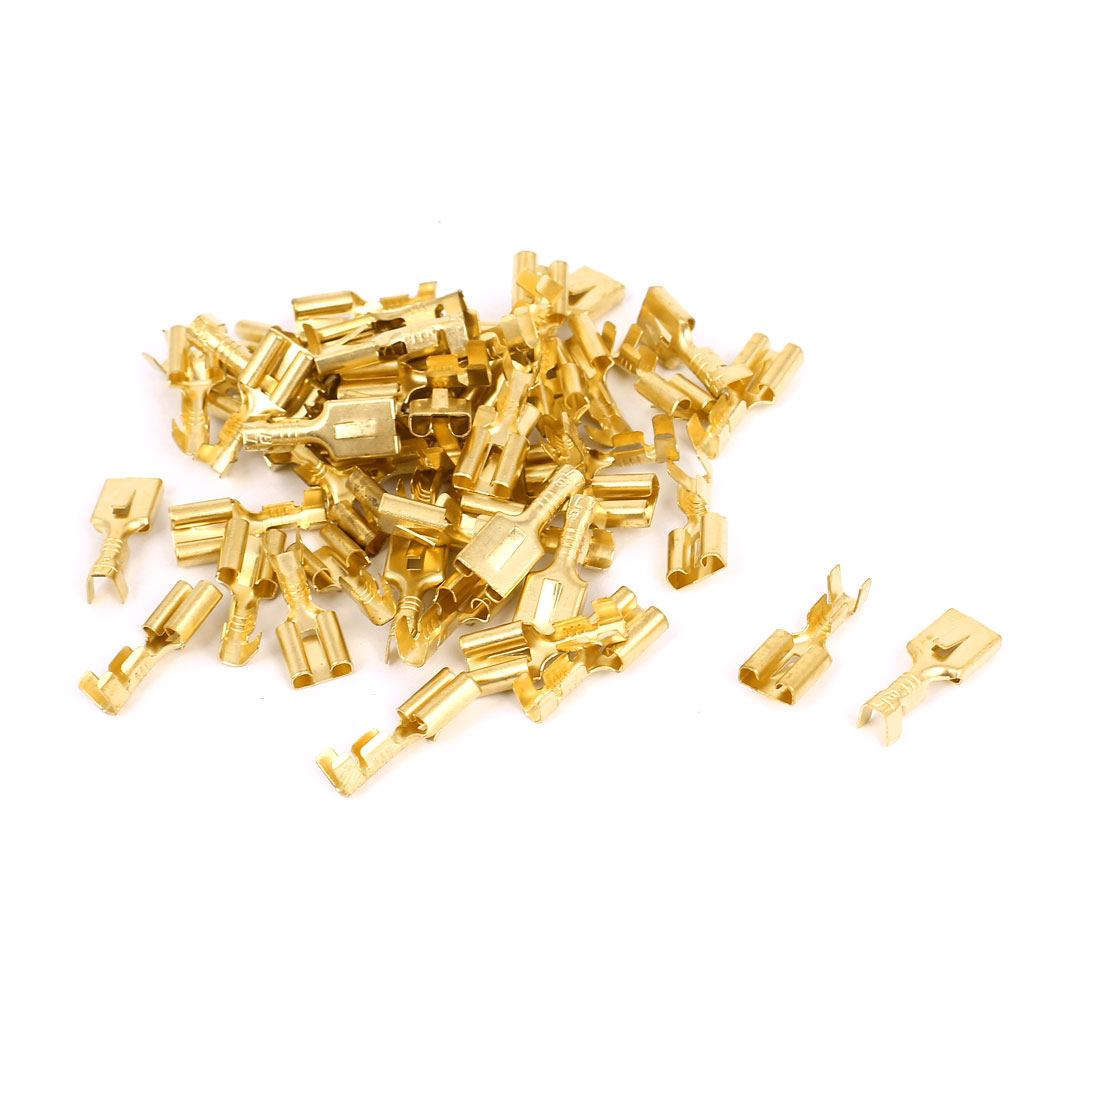 50 Pcs 4mm Insert Spring Solder Cold Pressed Terminal Connector